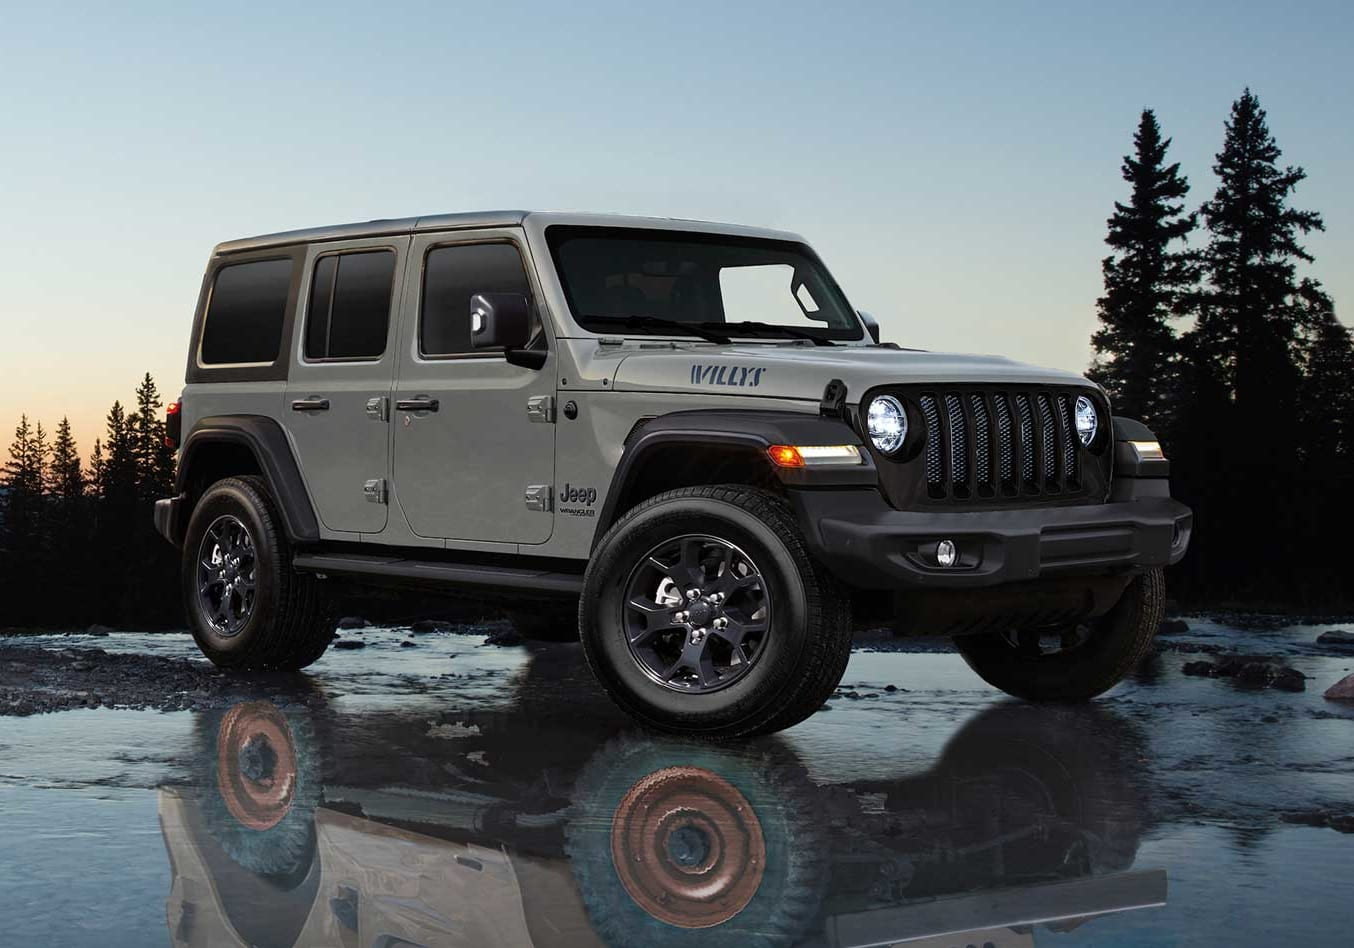 2021 Jeep Wrangler Unlimited Willys special edition